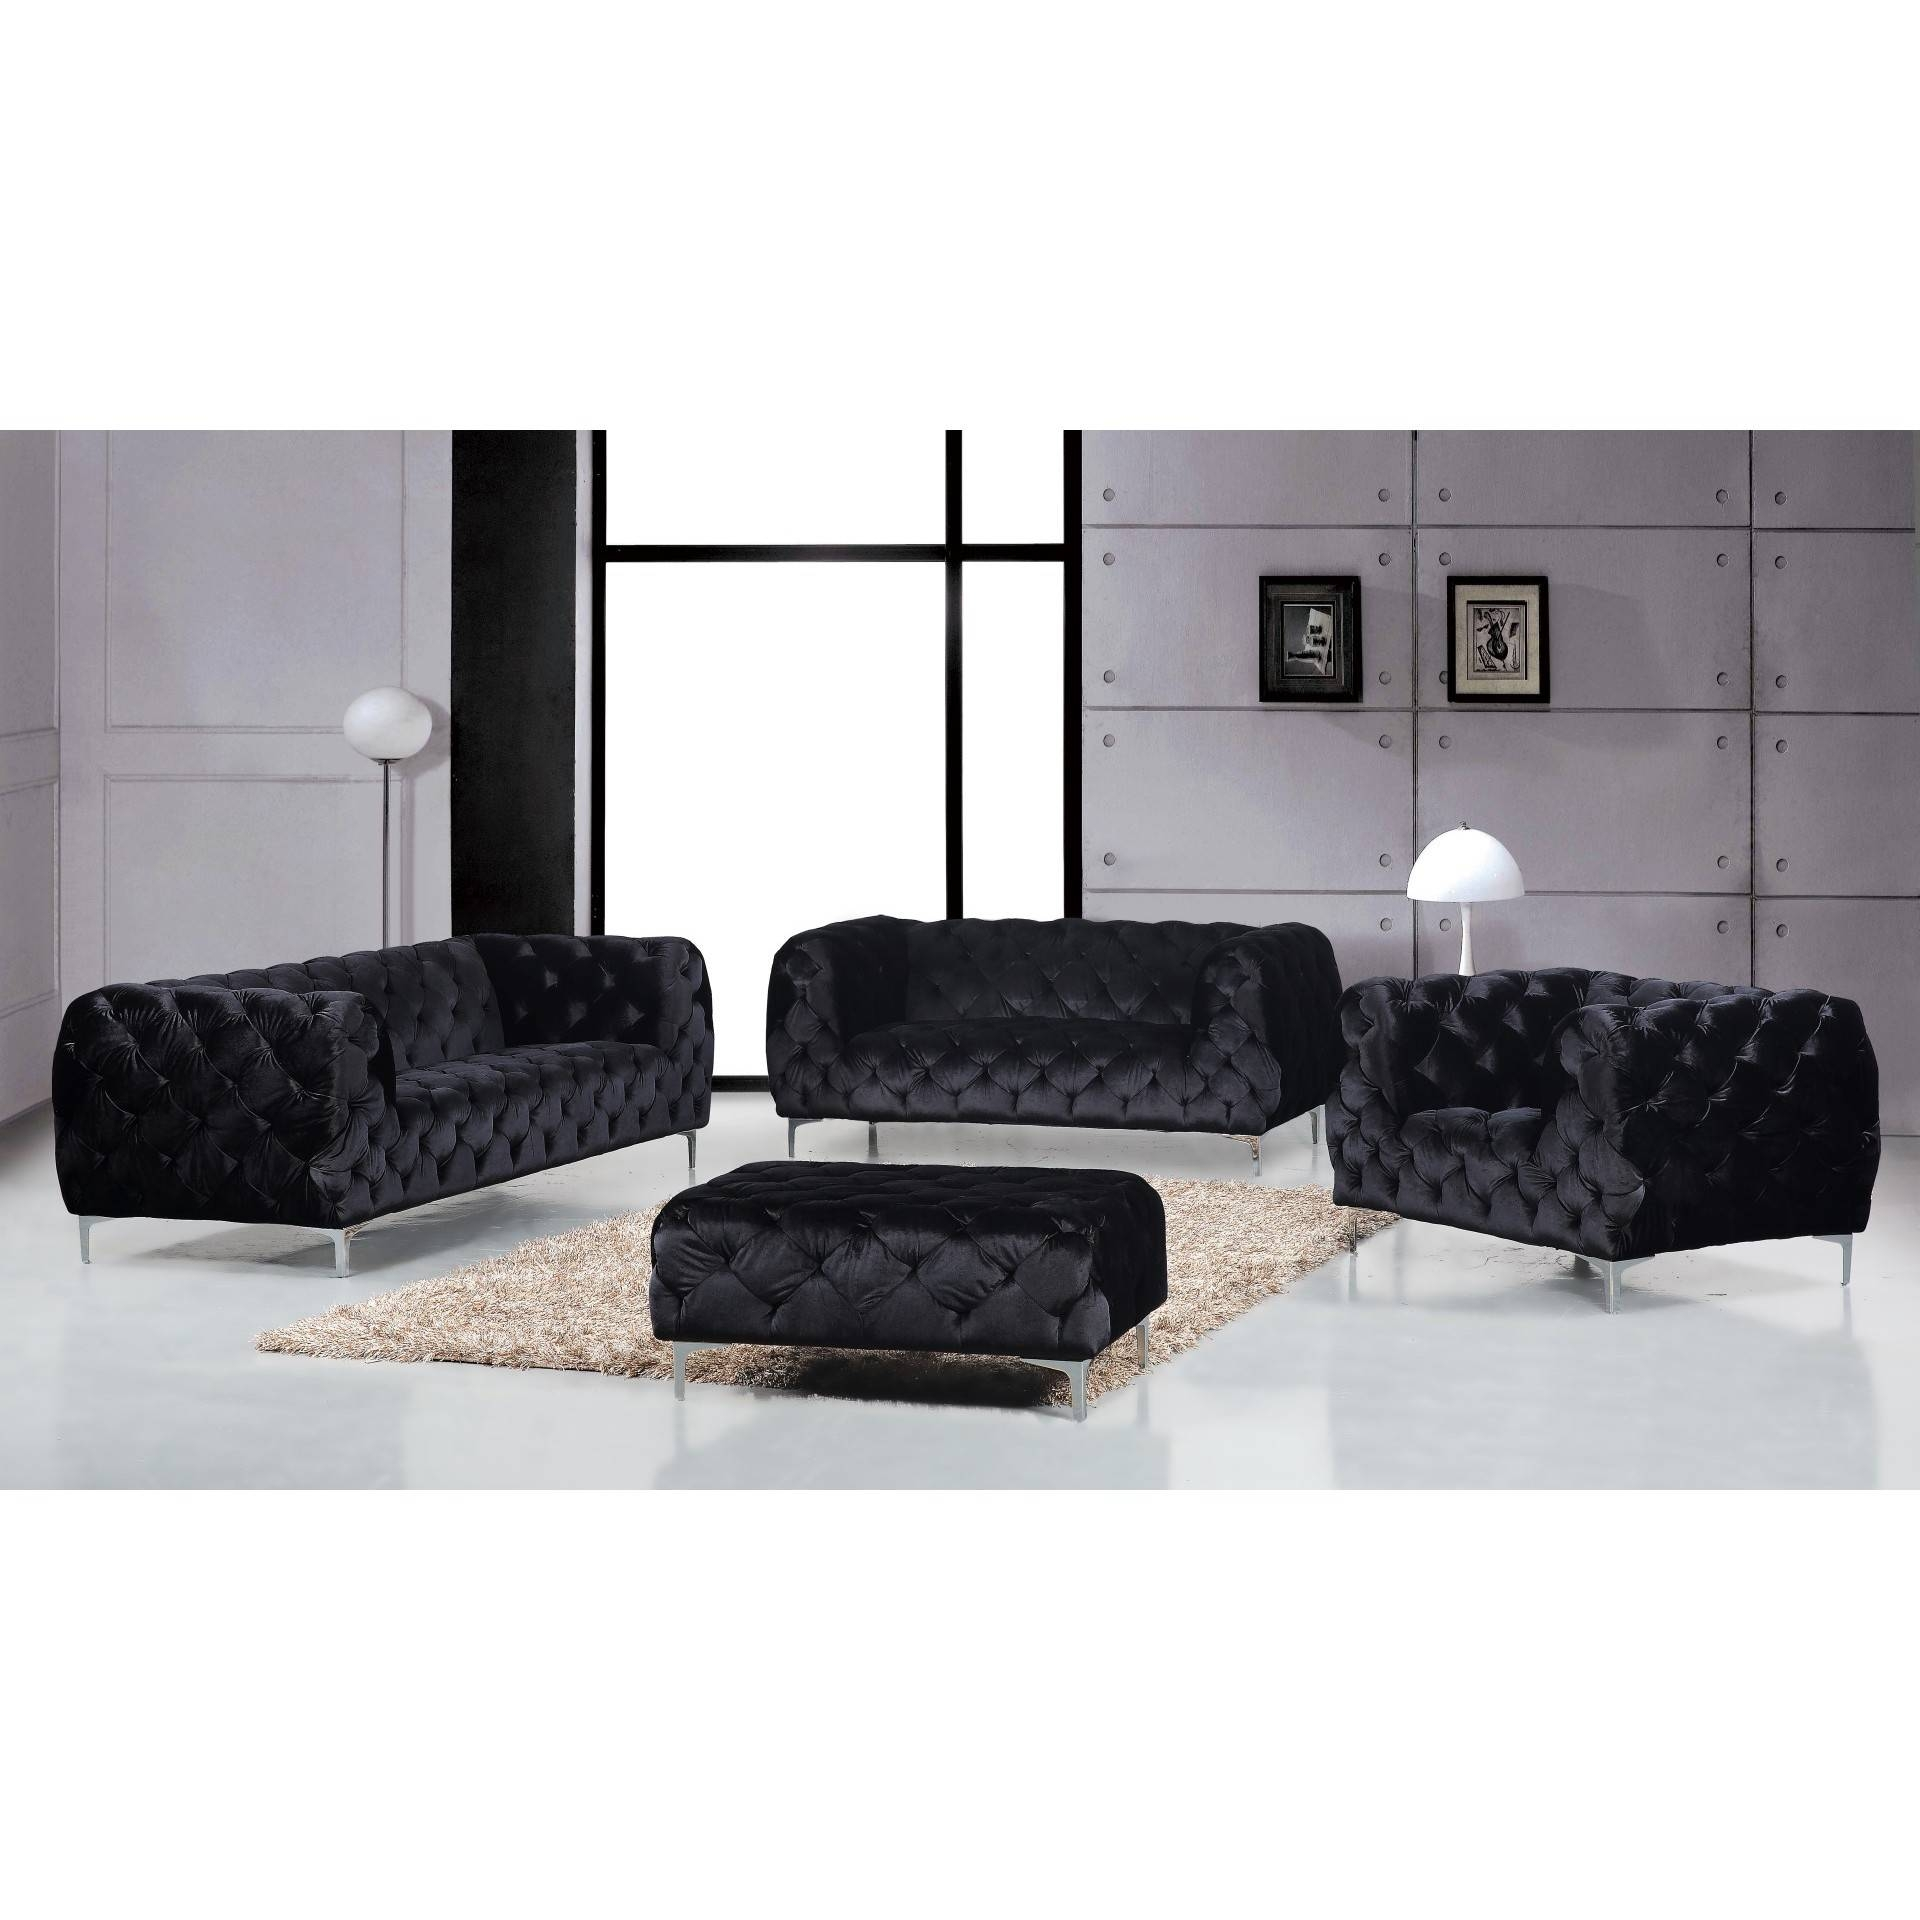 Mercer Velvet Sofa (Multiple Colors)Meridian Furniture pertaining to Black Velvet Sofas (Image 14 of 30)